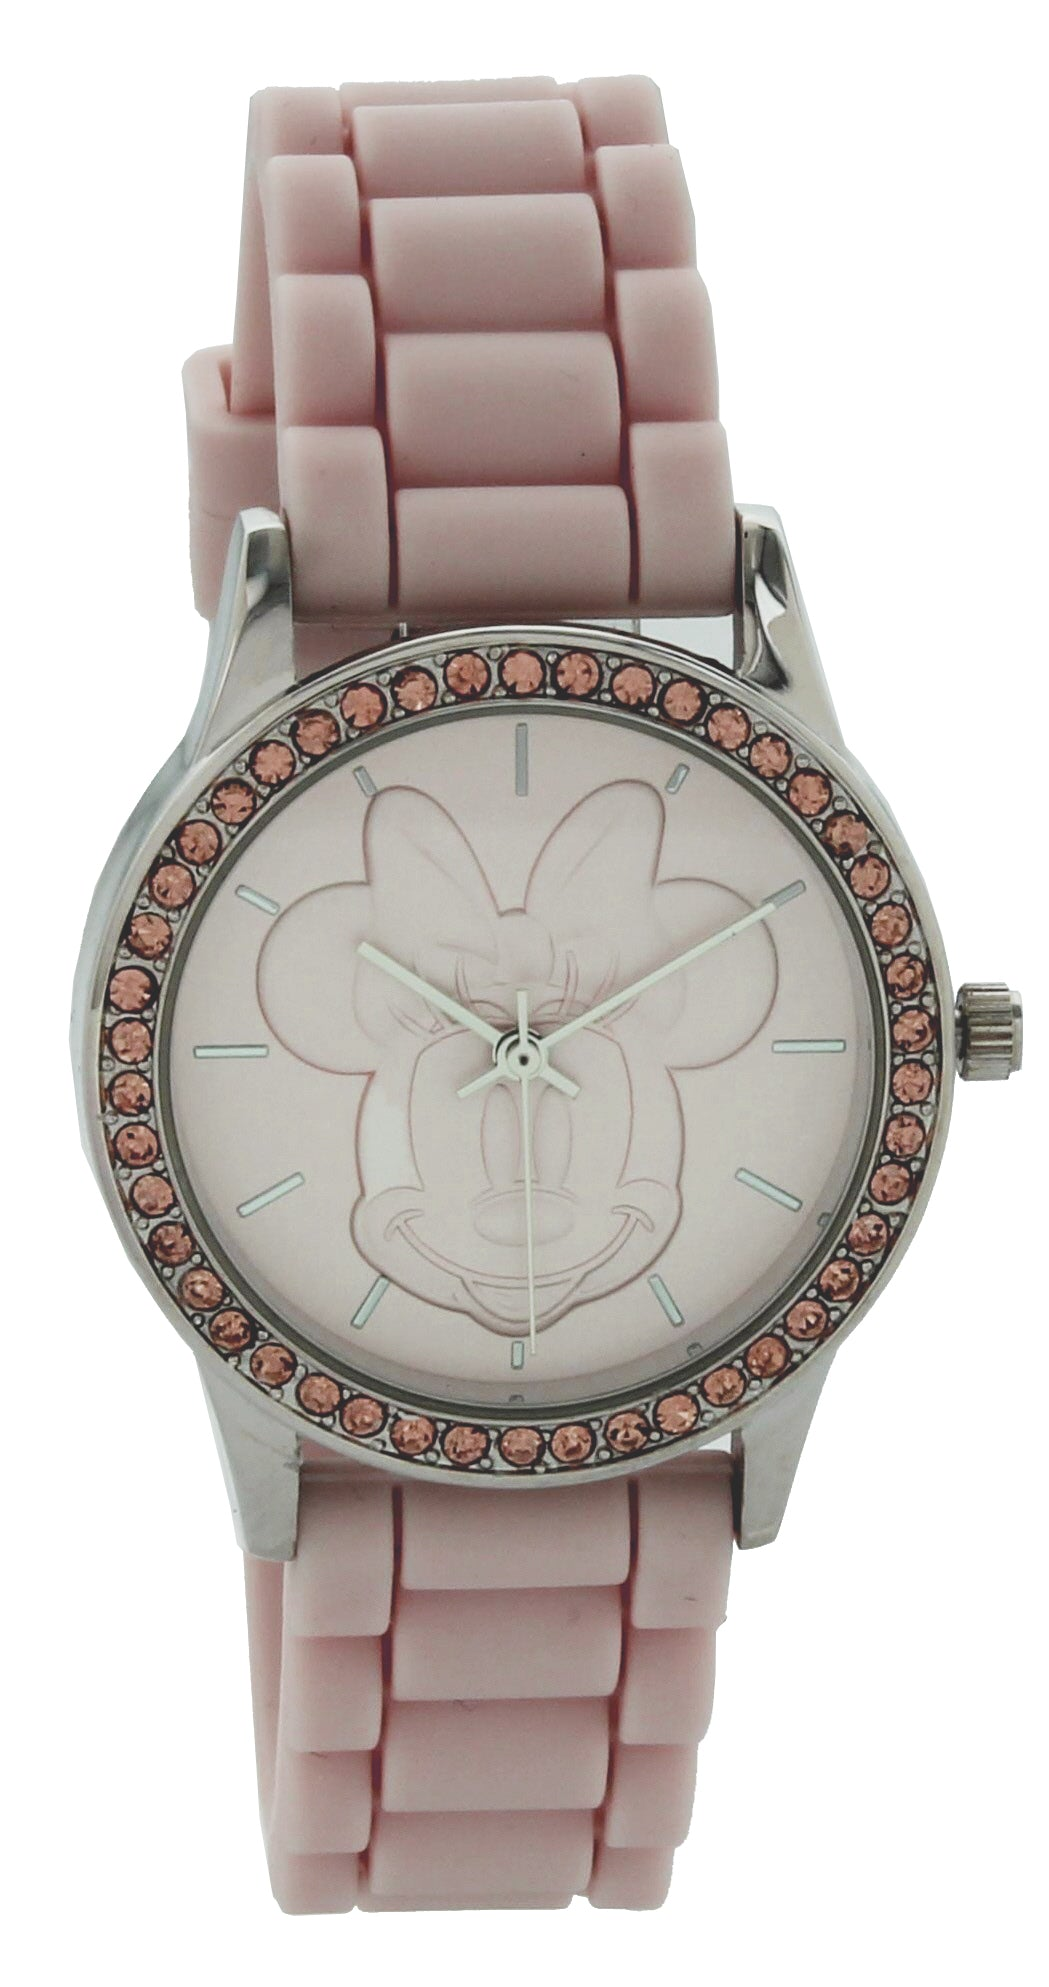 Disney Women's Minnie Mouse Watch w/ Pink Dial & Strap - MN1590BB